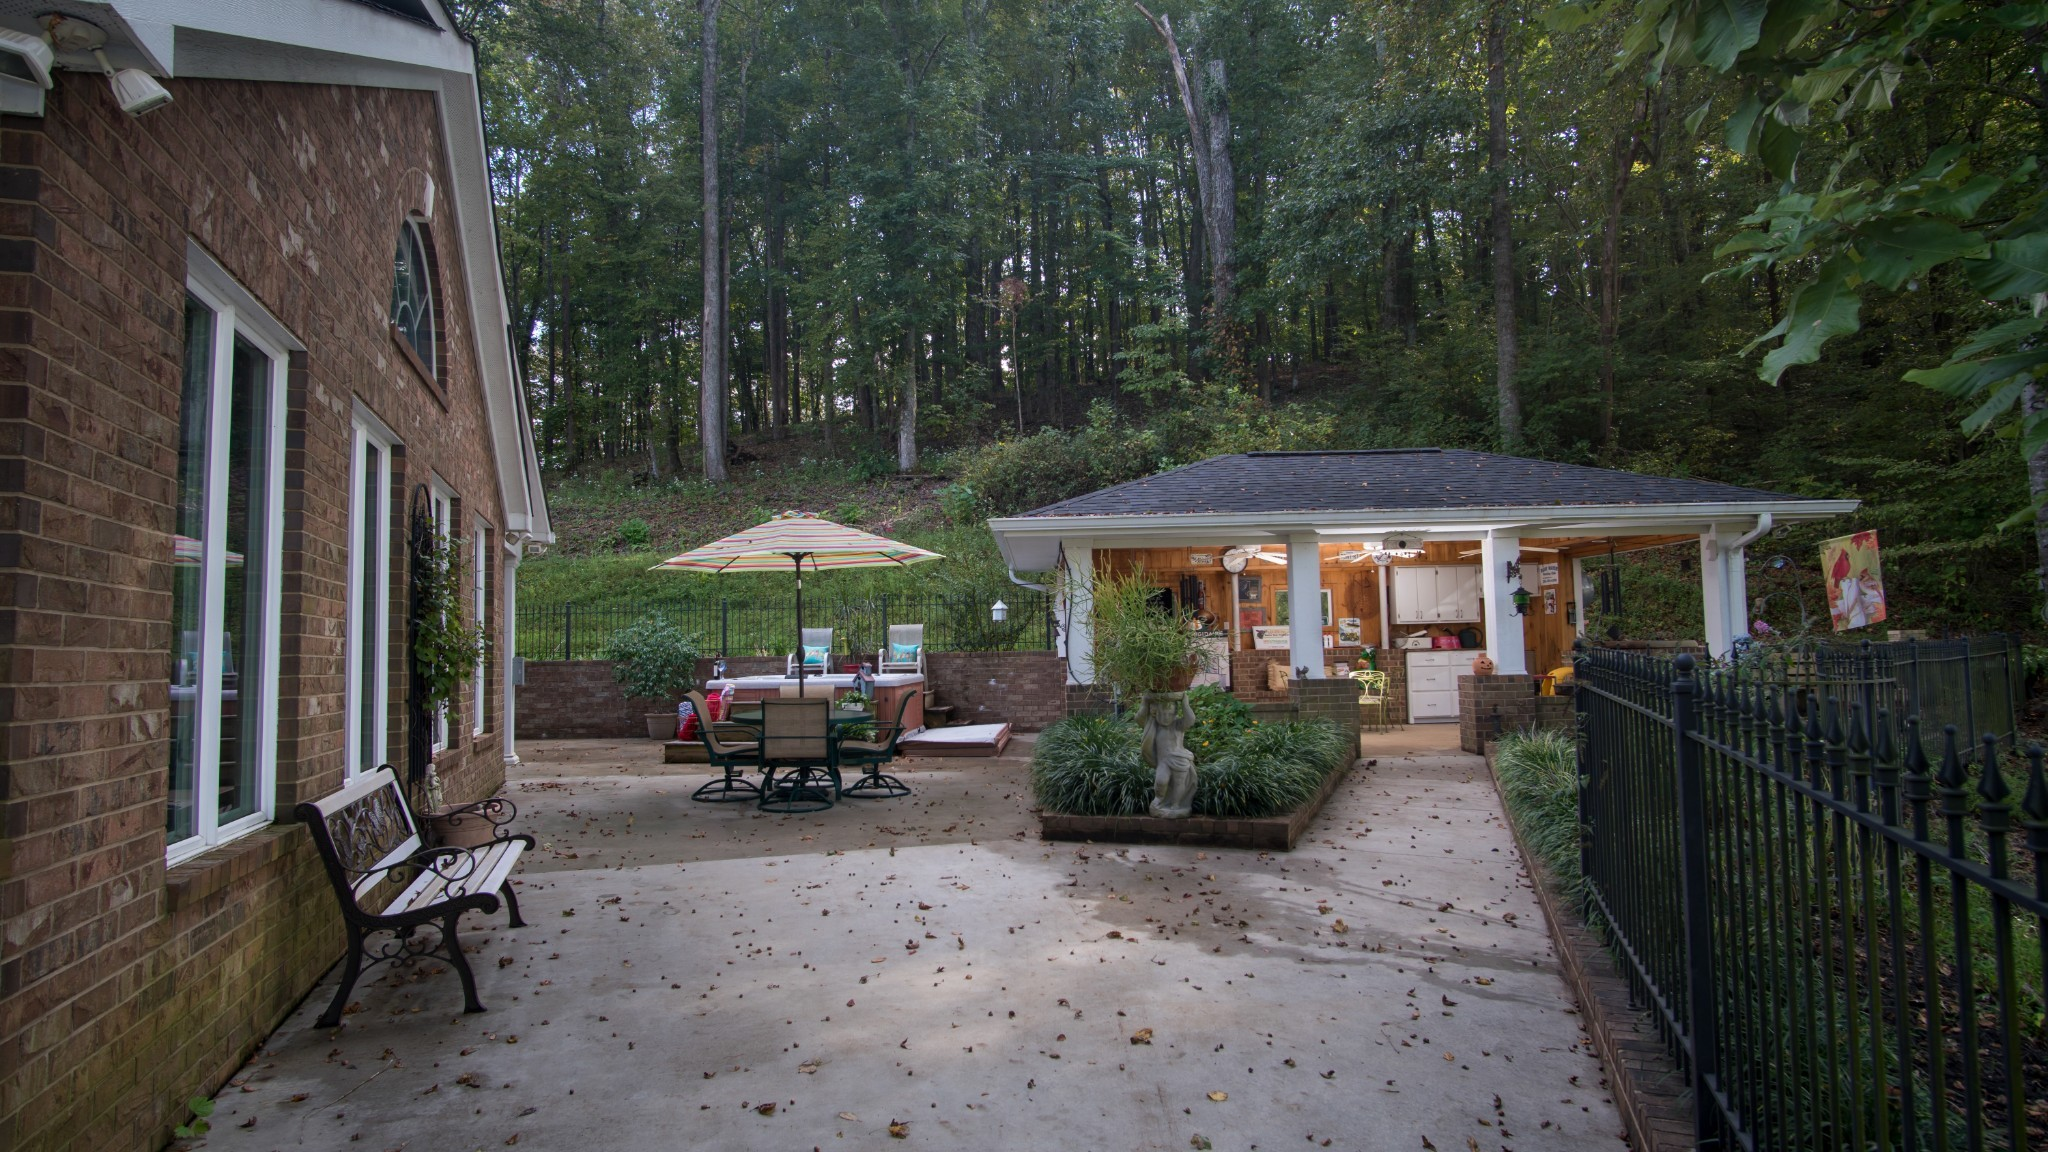 543 Lambs Ferry Rd Property Photo - Loretto, TN real estate listing